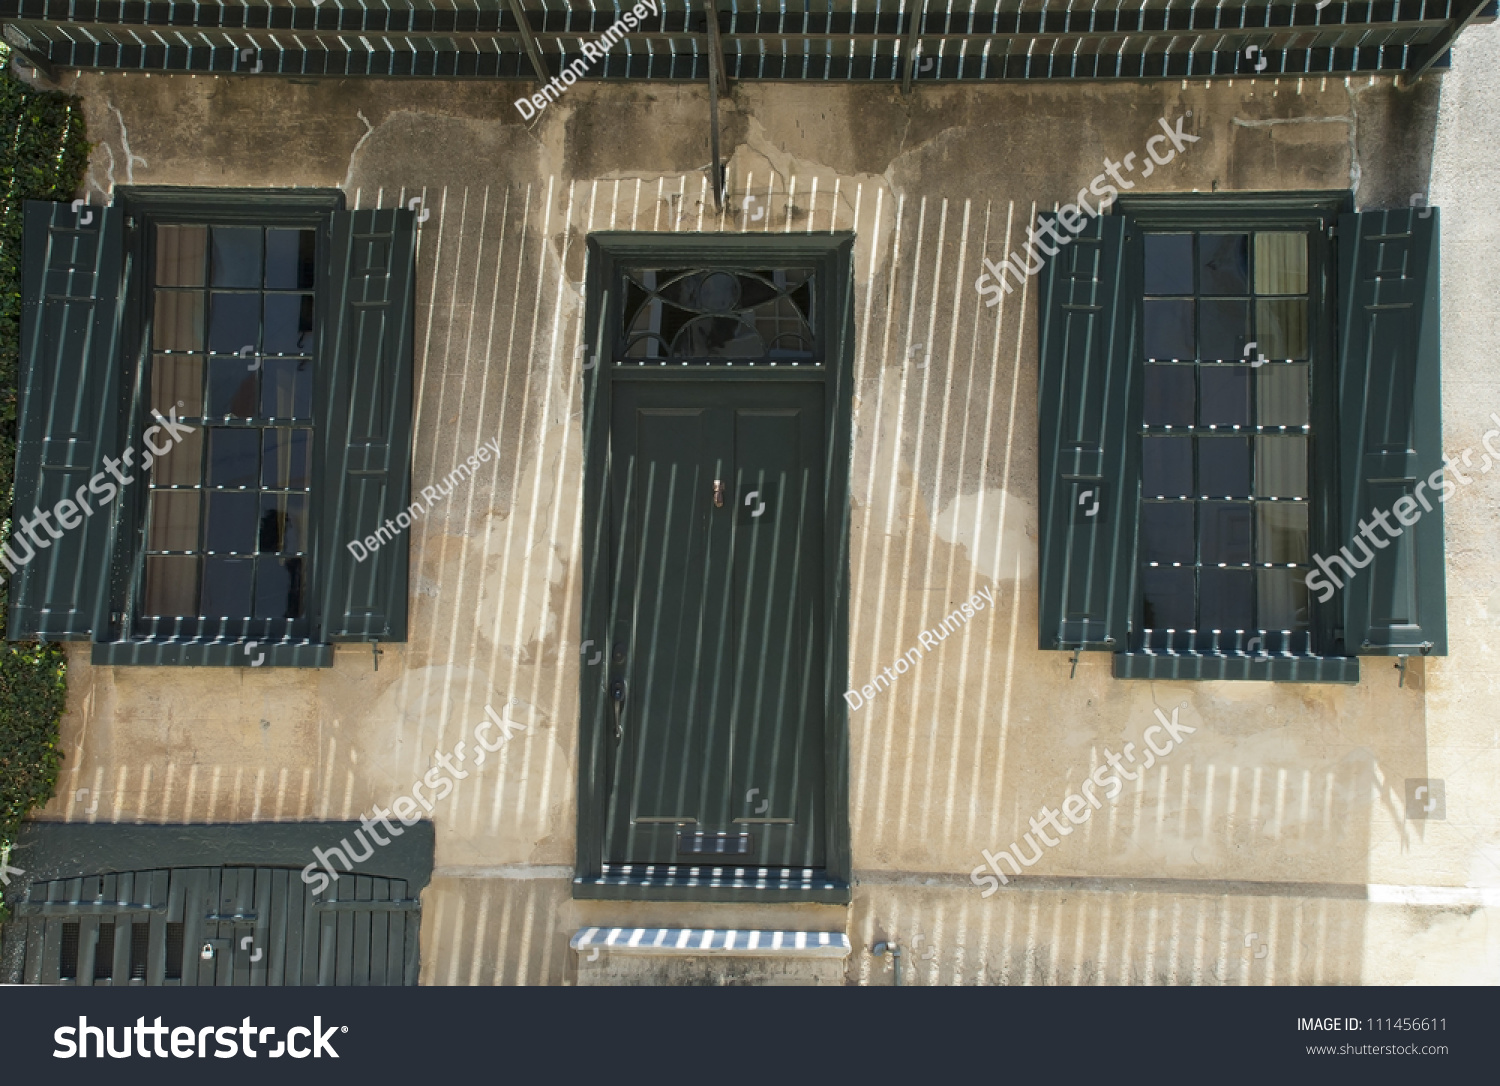 The iron bars of a balcony cast a grilled patterned shadow over the front door of & Iron Bars Balcony Cast Grilled Patterned Stock Photo (Royalty Free ...